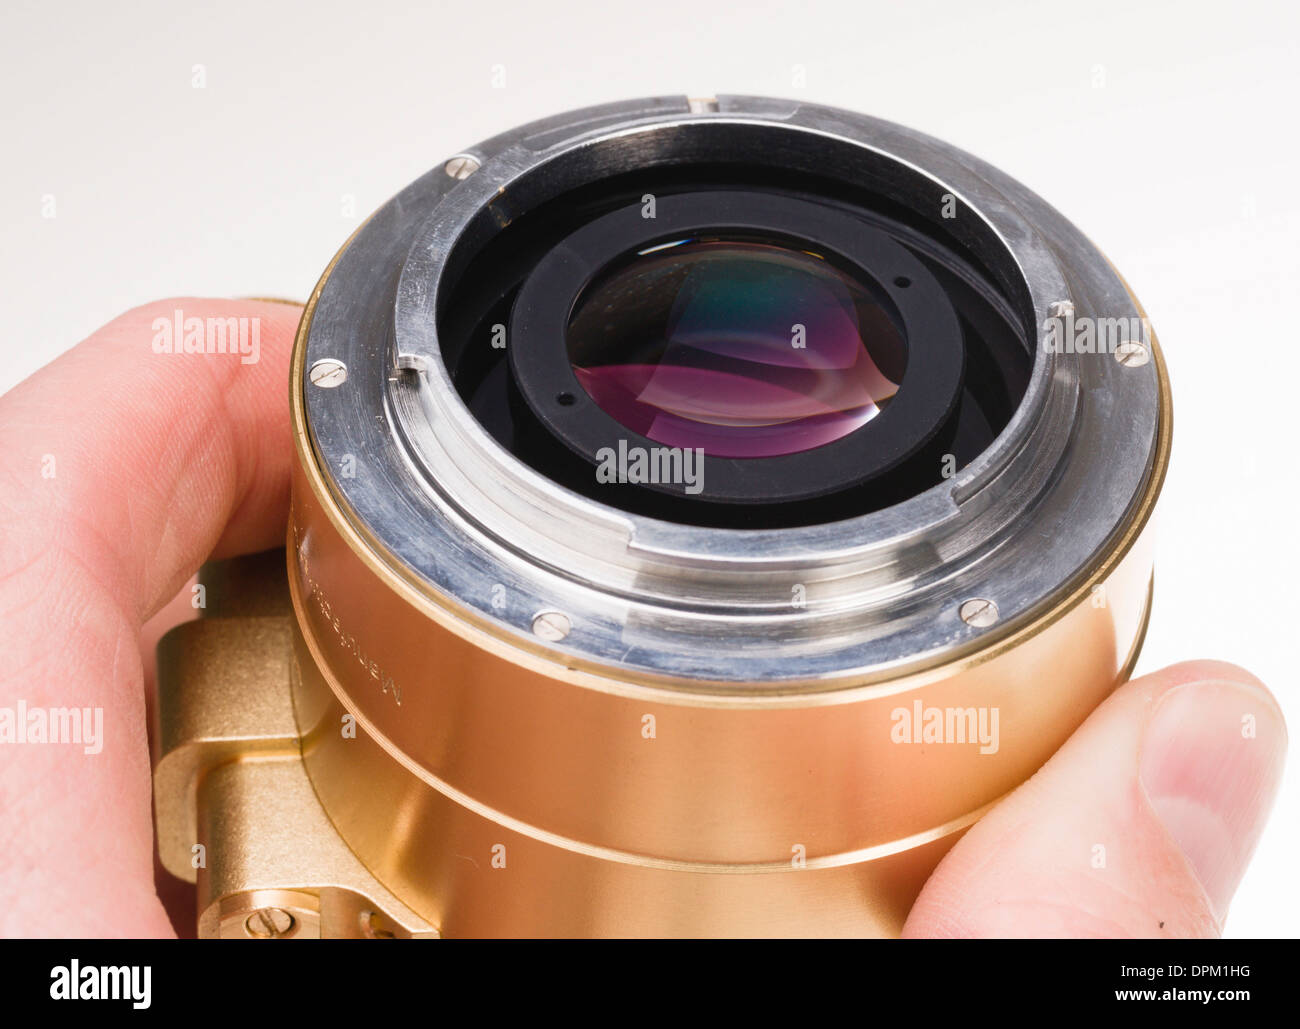 Nikon mount, Lomography Petzval lens project - Kickstarter internet production run funded by orders. Replica of 1840 lens. - Stock Image